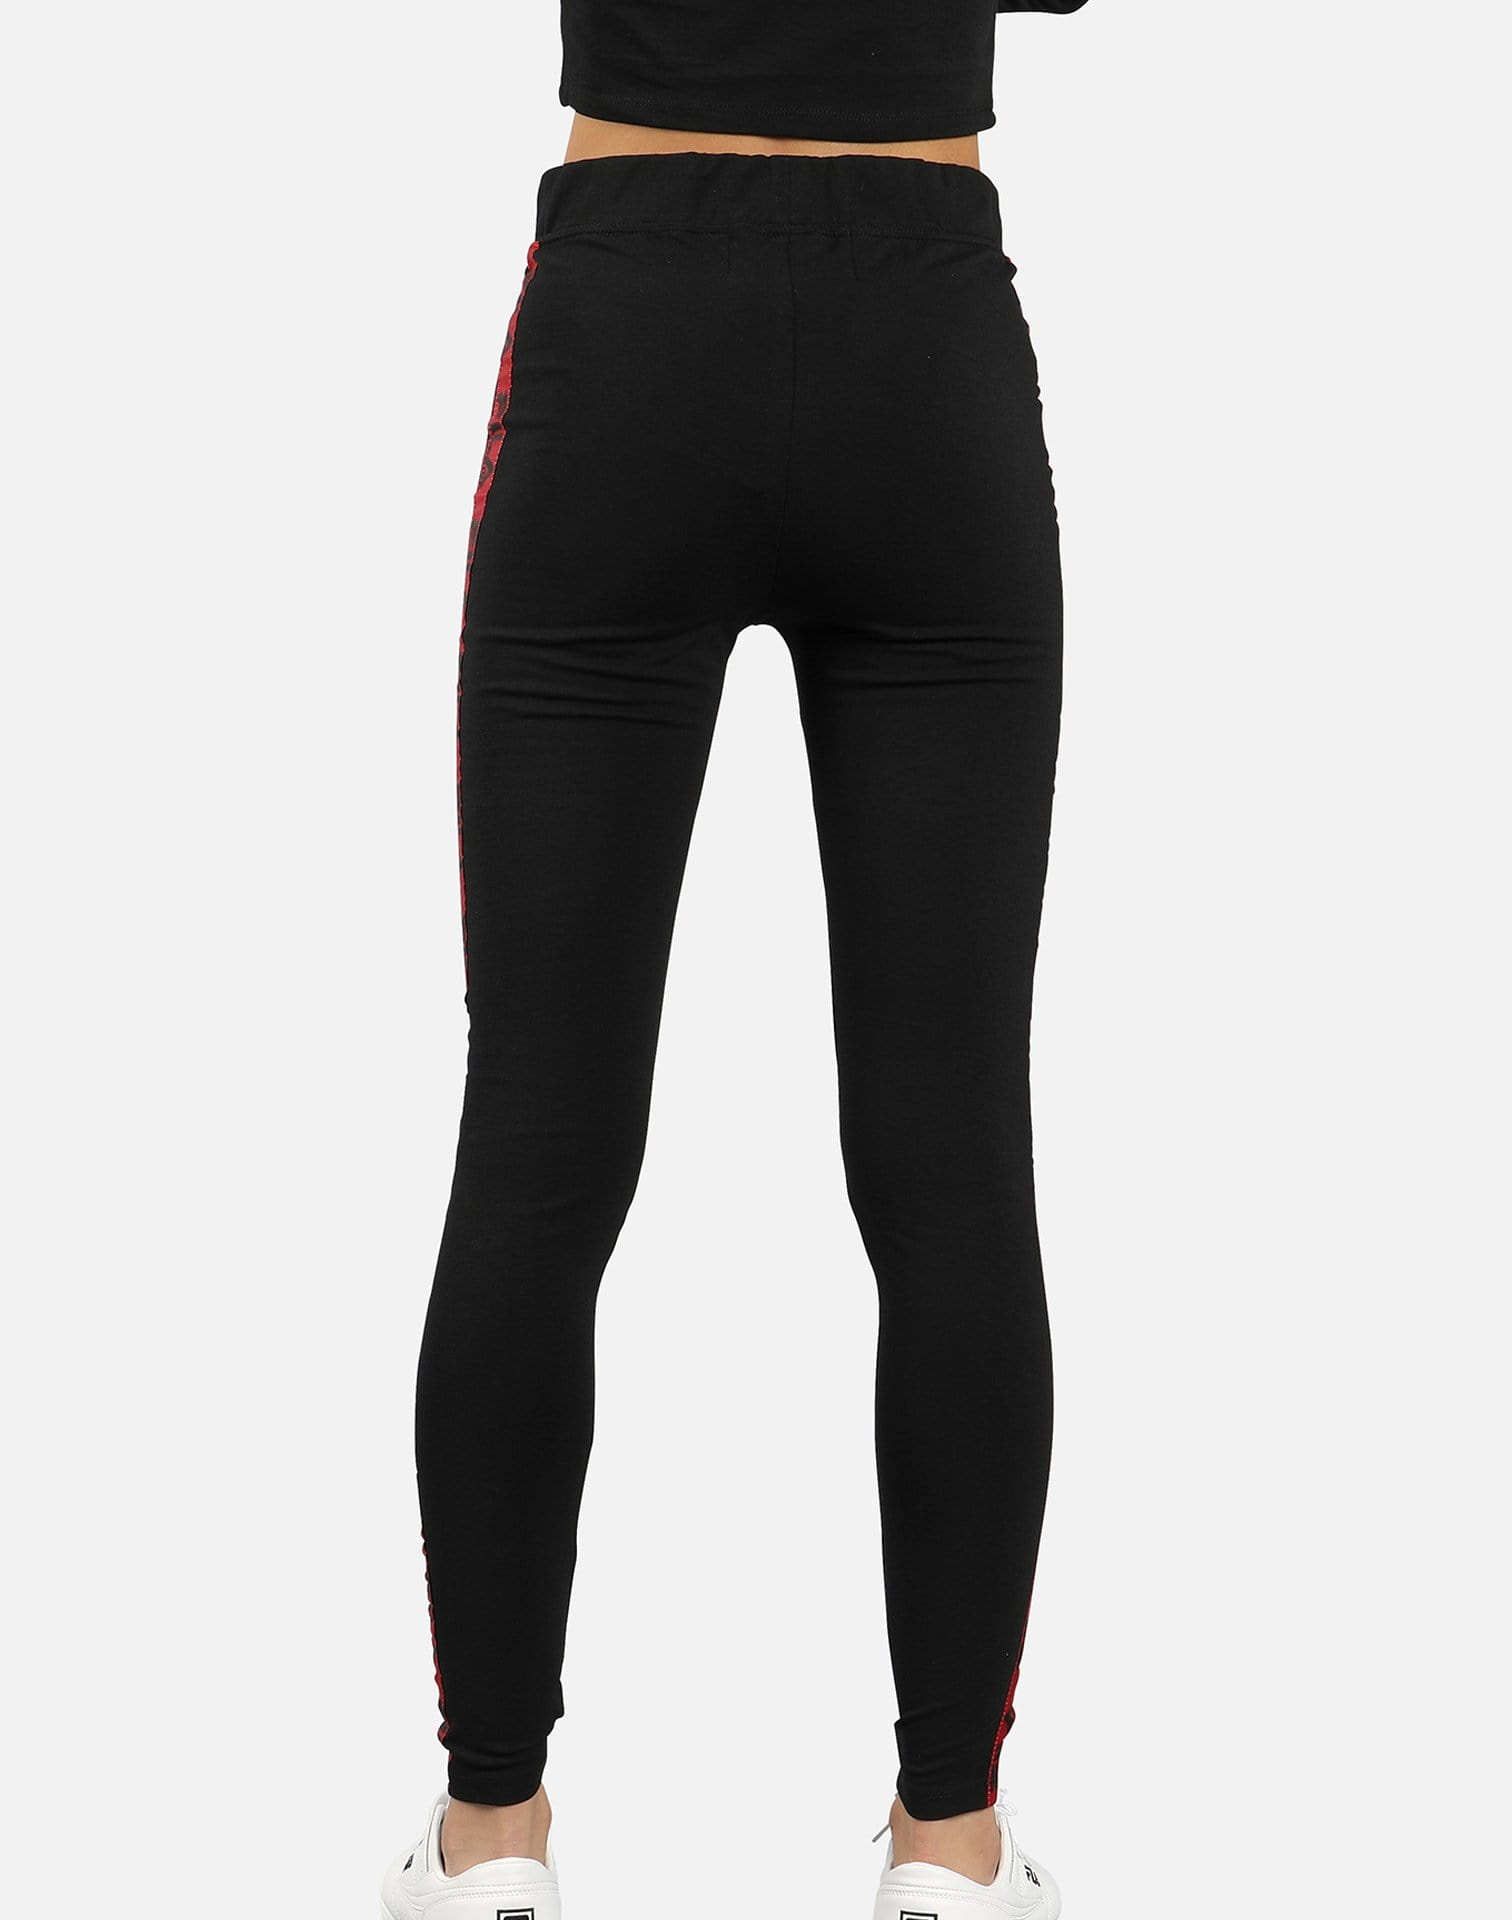 Fila Amelia Leggings